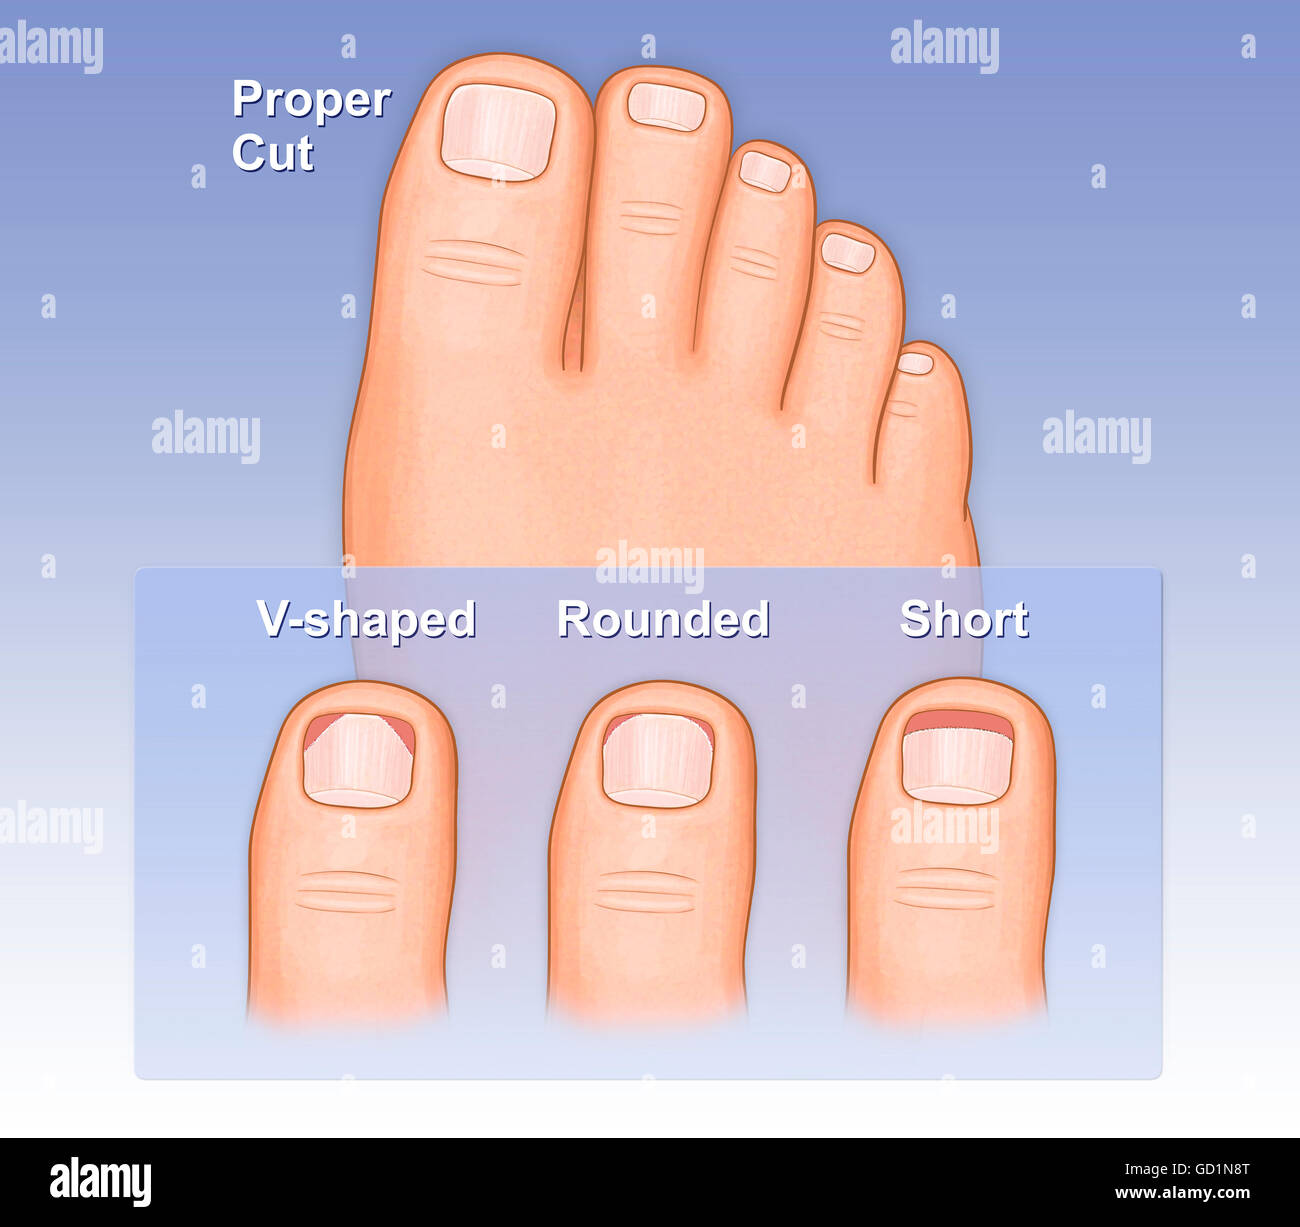 Showing a proper way to cut toe nails versus and improper way, shown ...